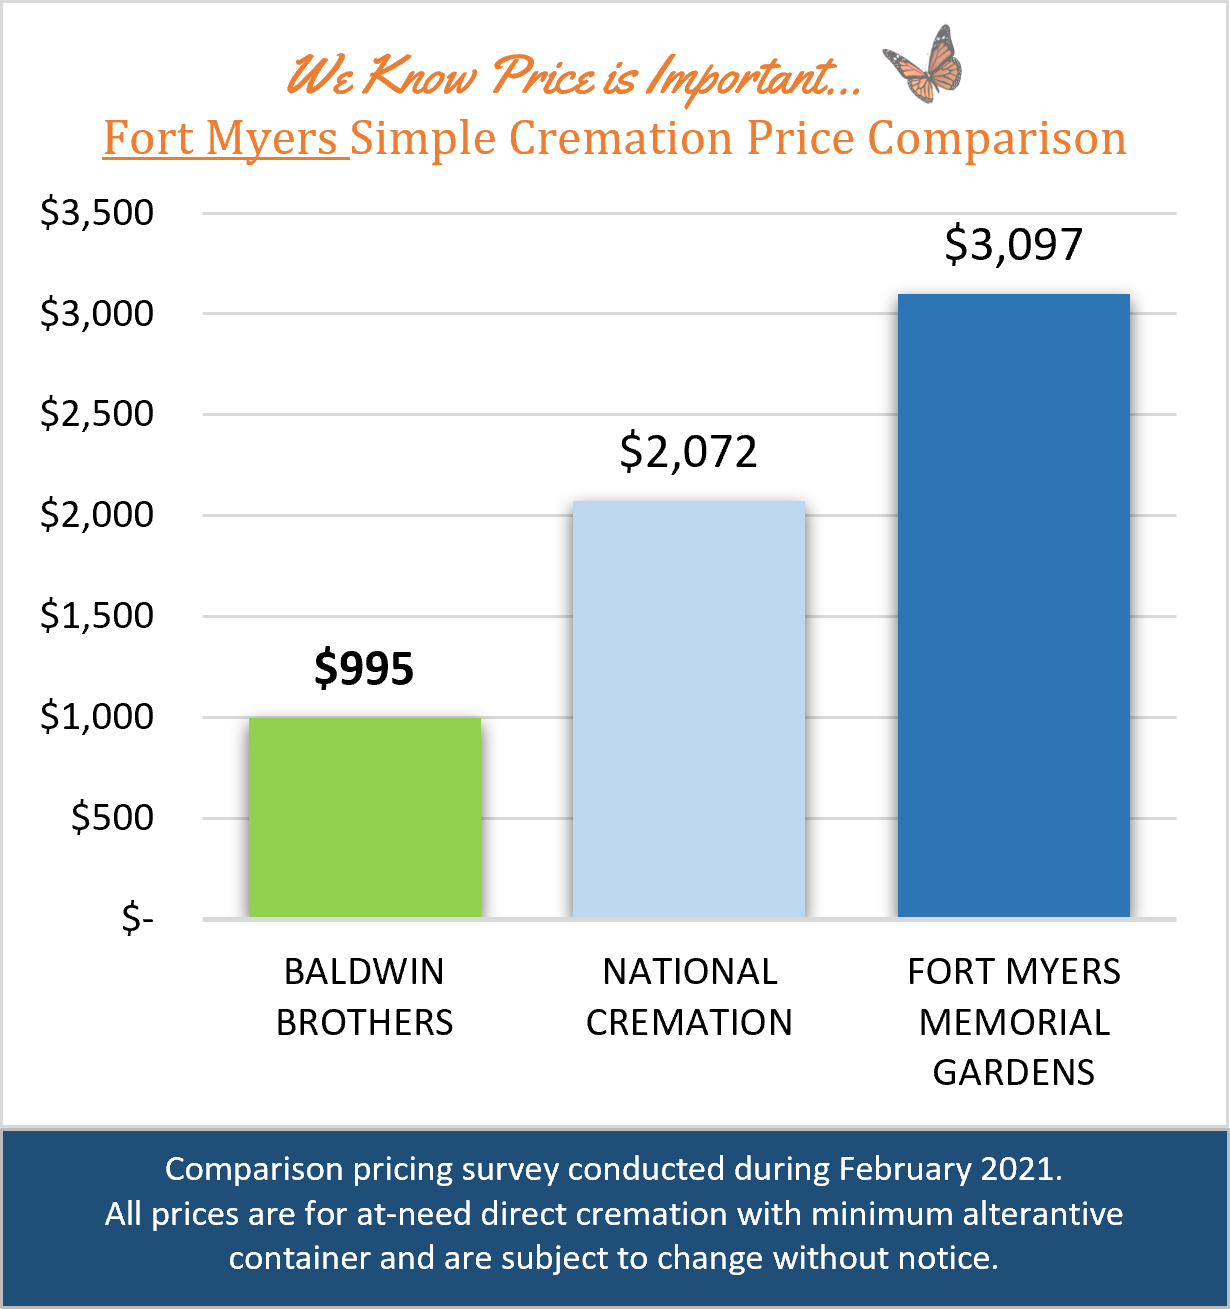 Fort Myers Price Comparison